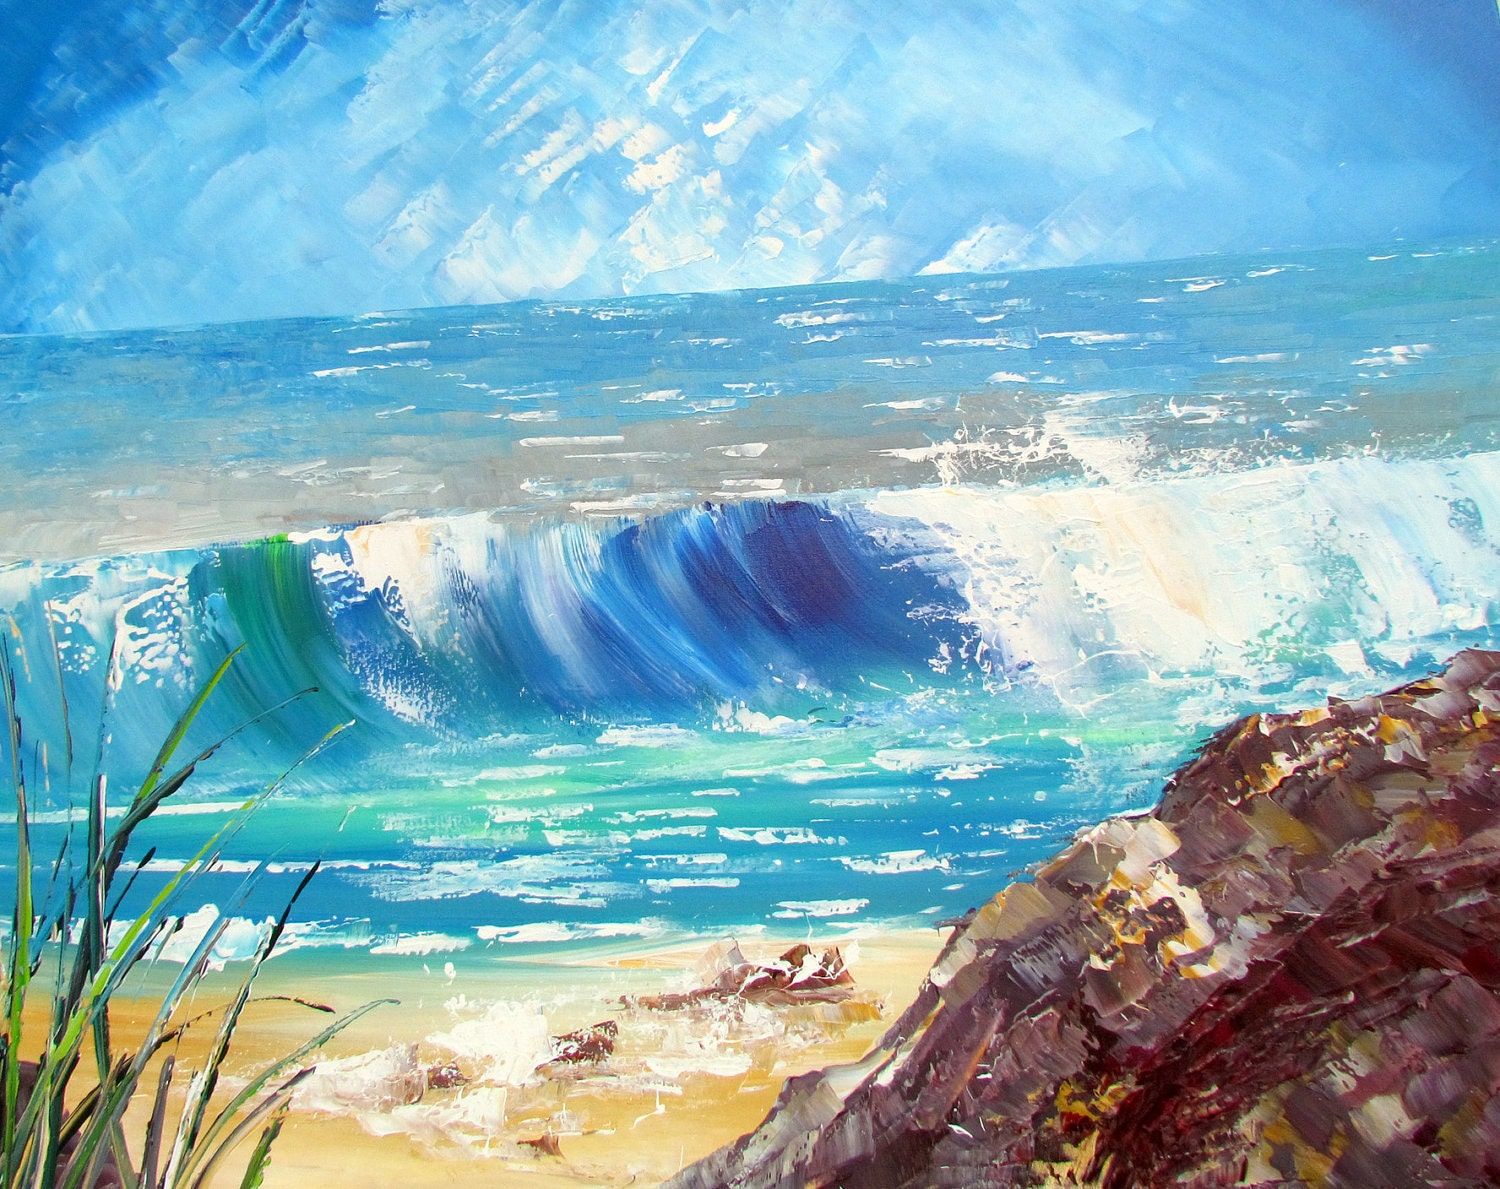 Wave Painting Original Seascape Painting Blue by Murayatiart : ilfullxfull346097236 from etsy.com size 1500 x 1189 jpeg 523kB